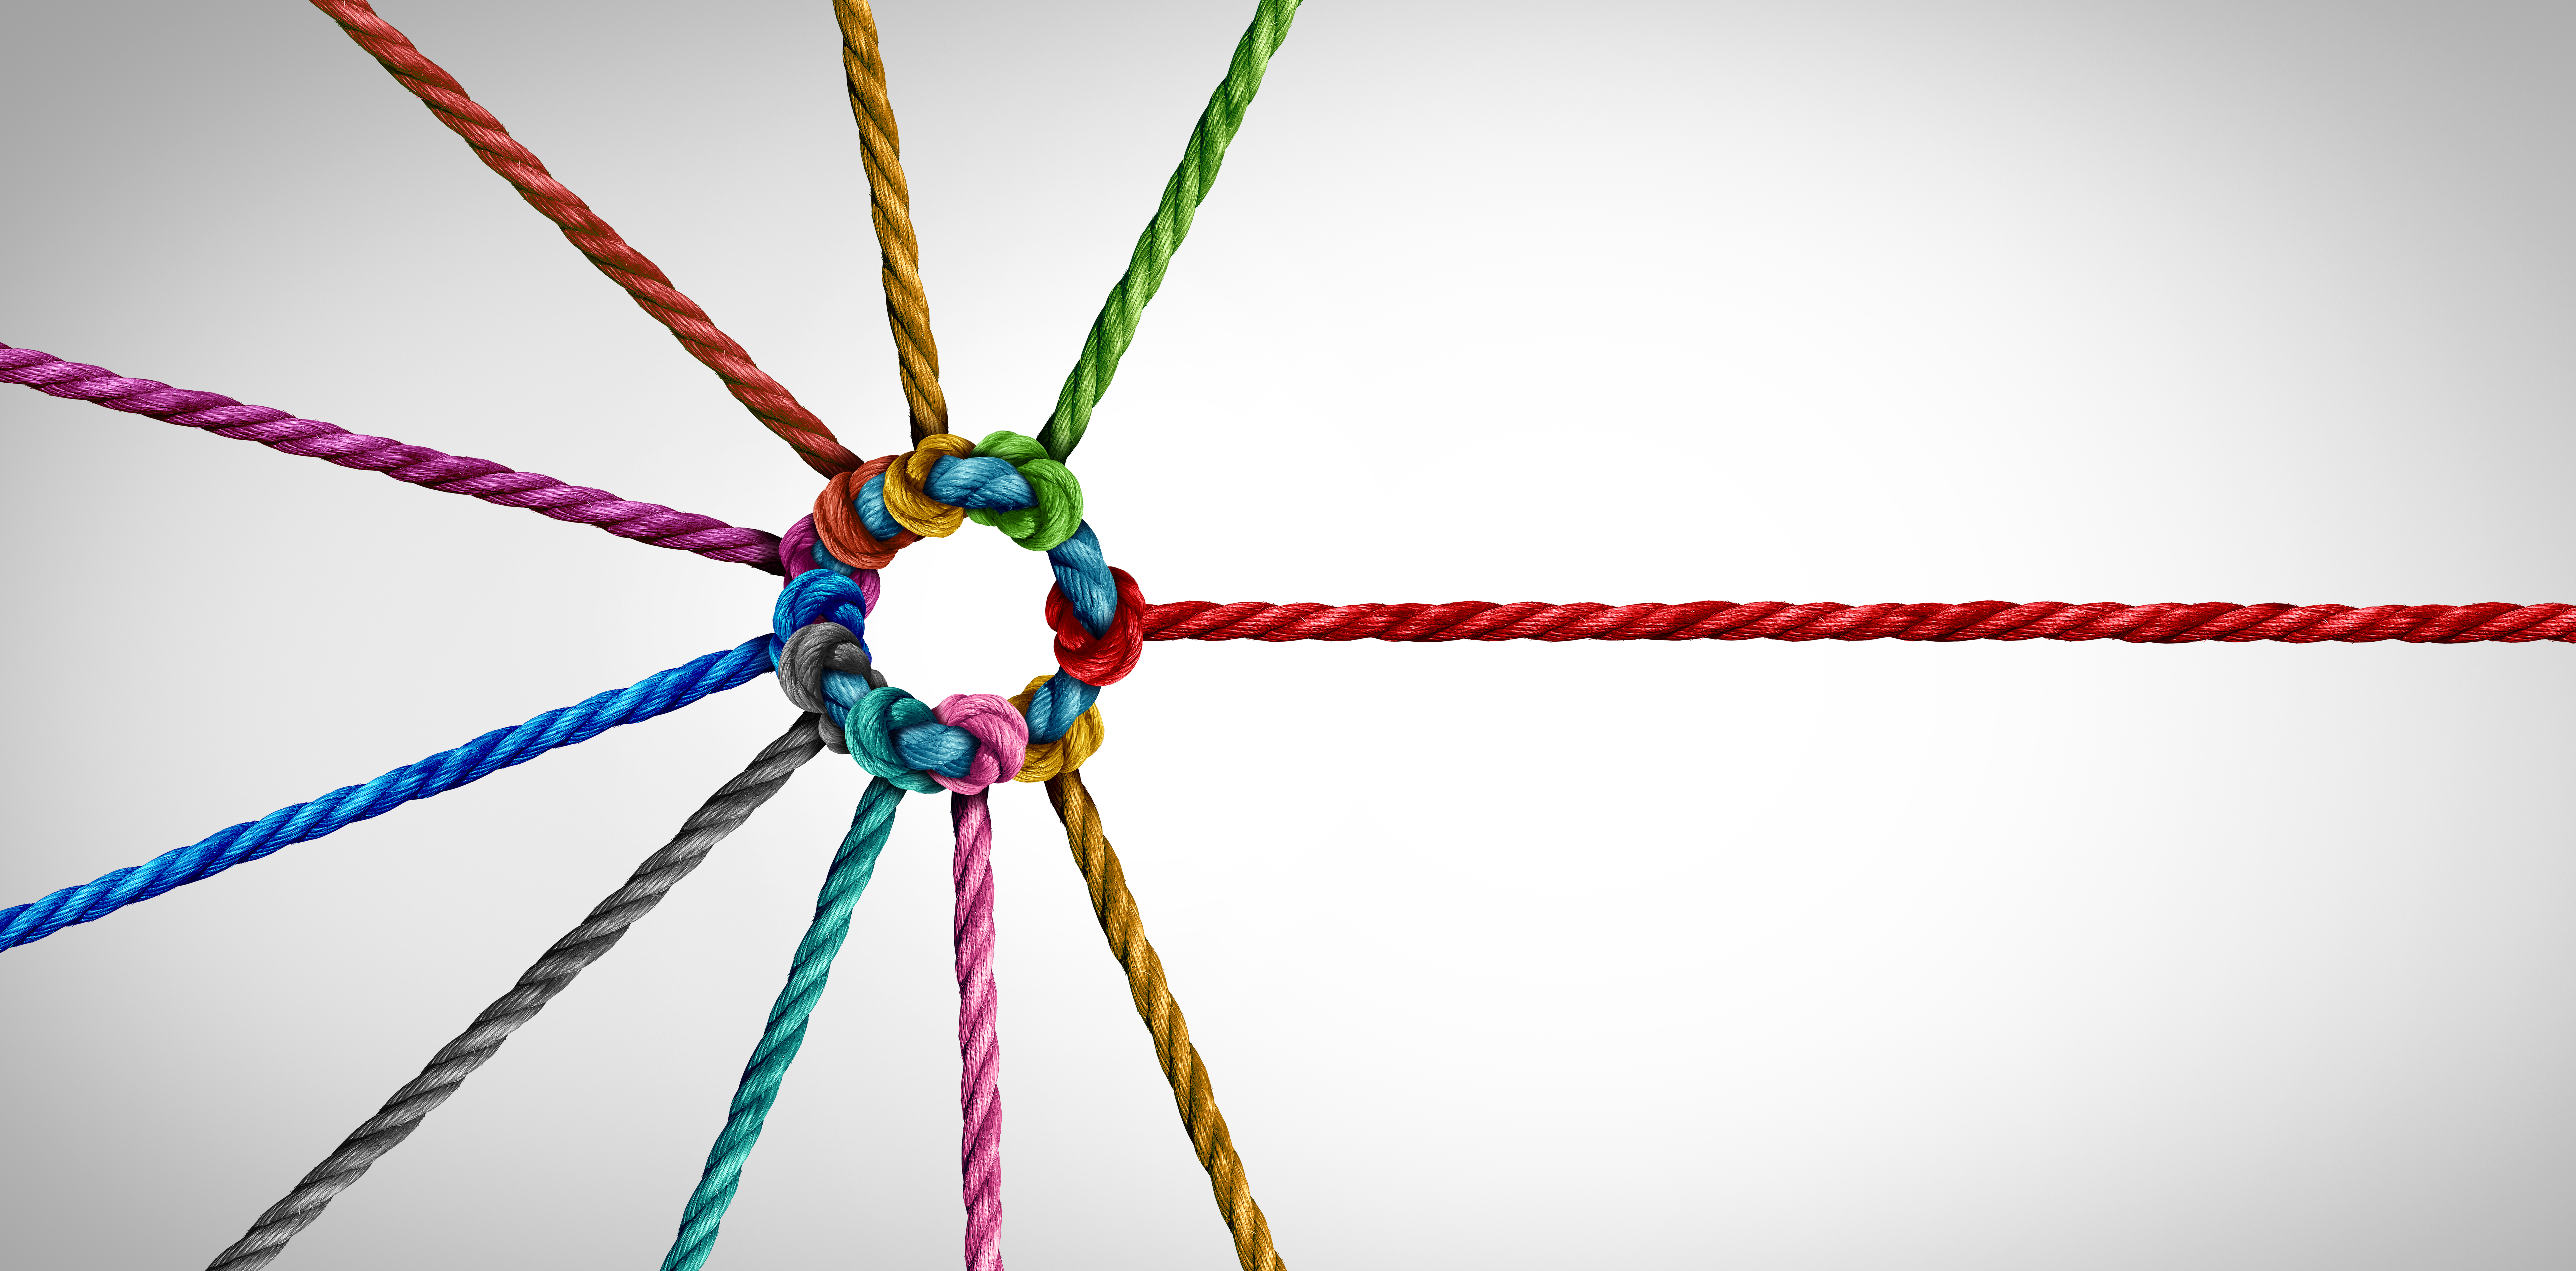 Ropes signifying team building (Photo: wildpixel / iStock / Getty Images Plus)